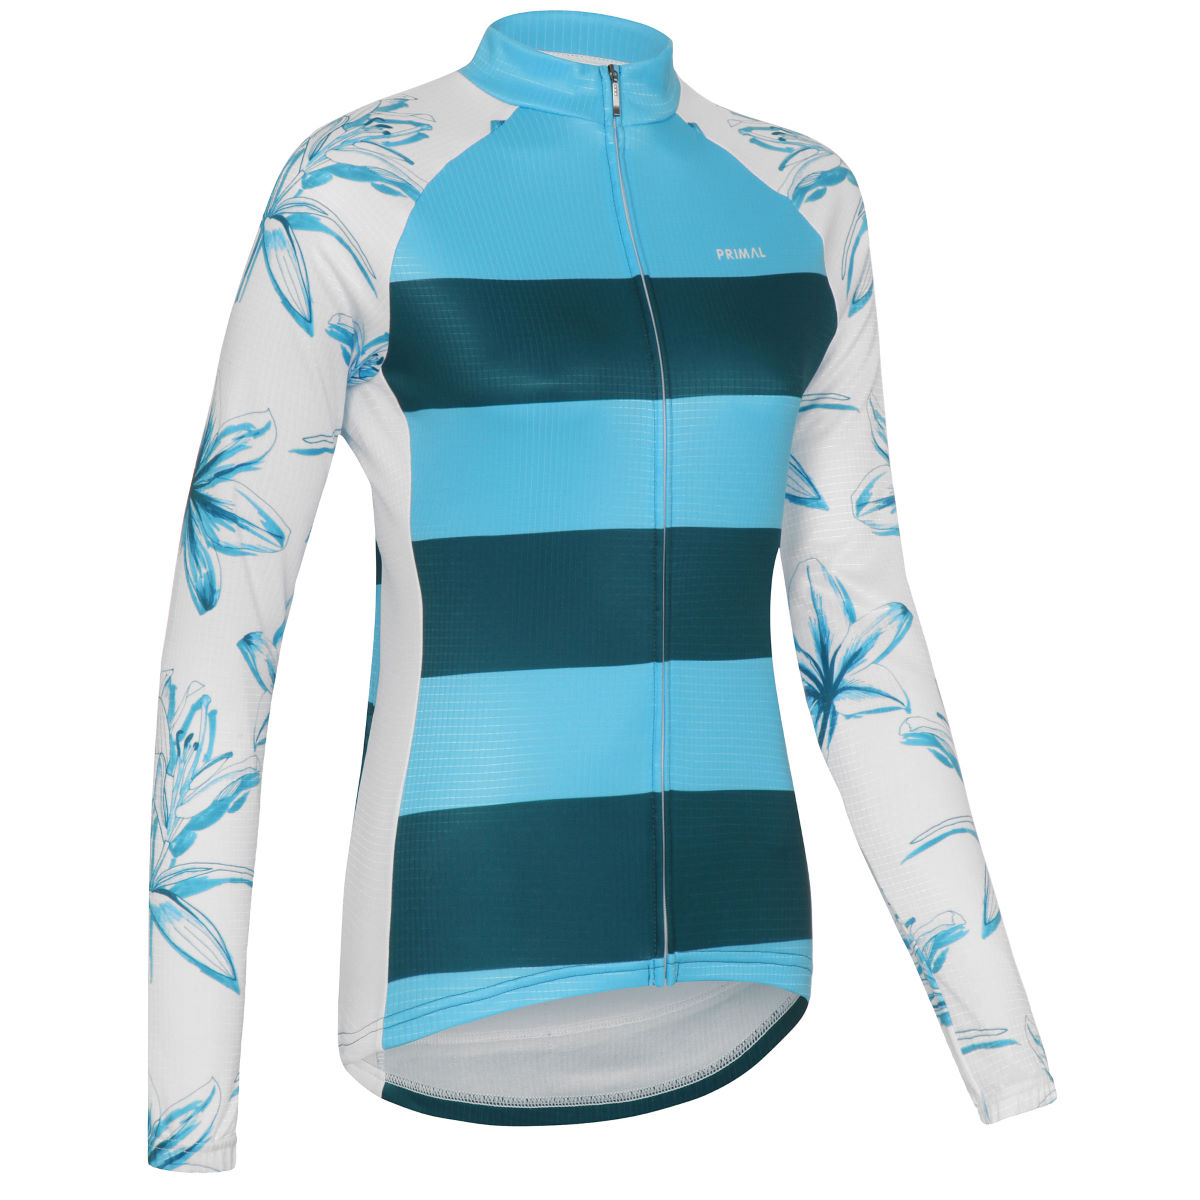 Maillot Femme Primal Chime Heavyweight (manches longues) - M Teal